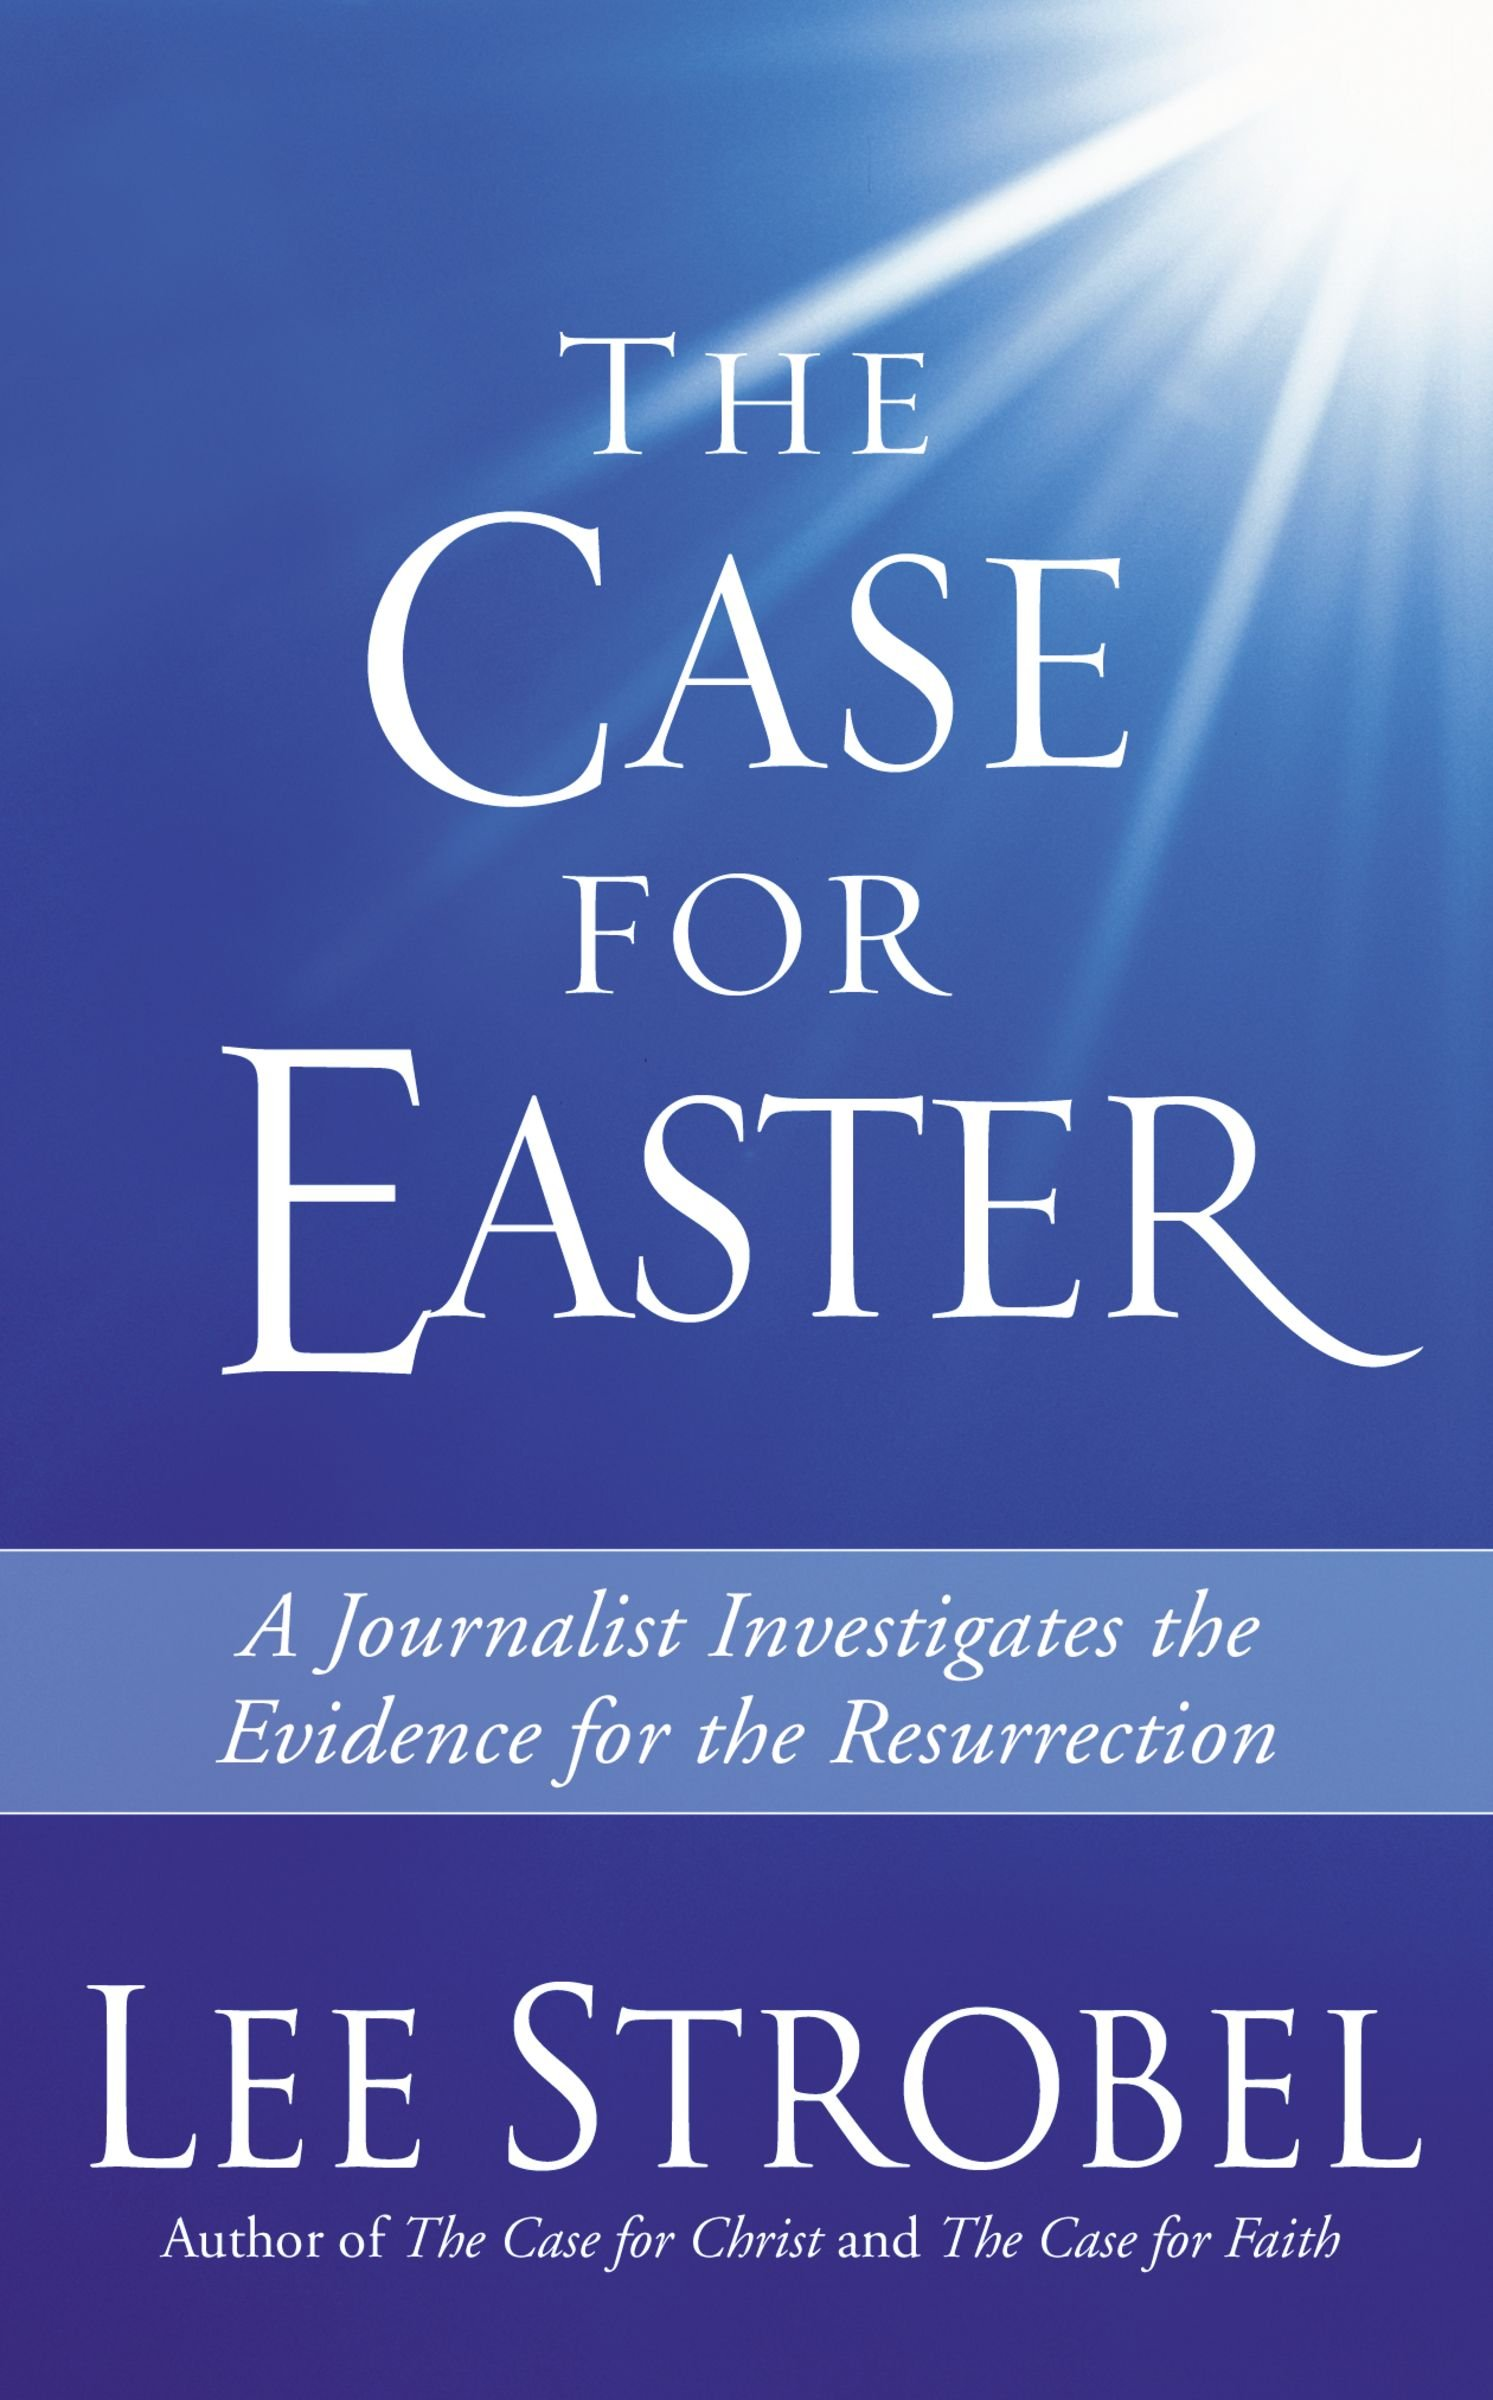 The Case for Easter